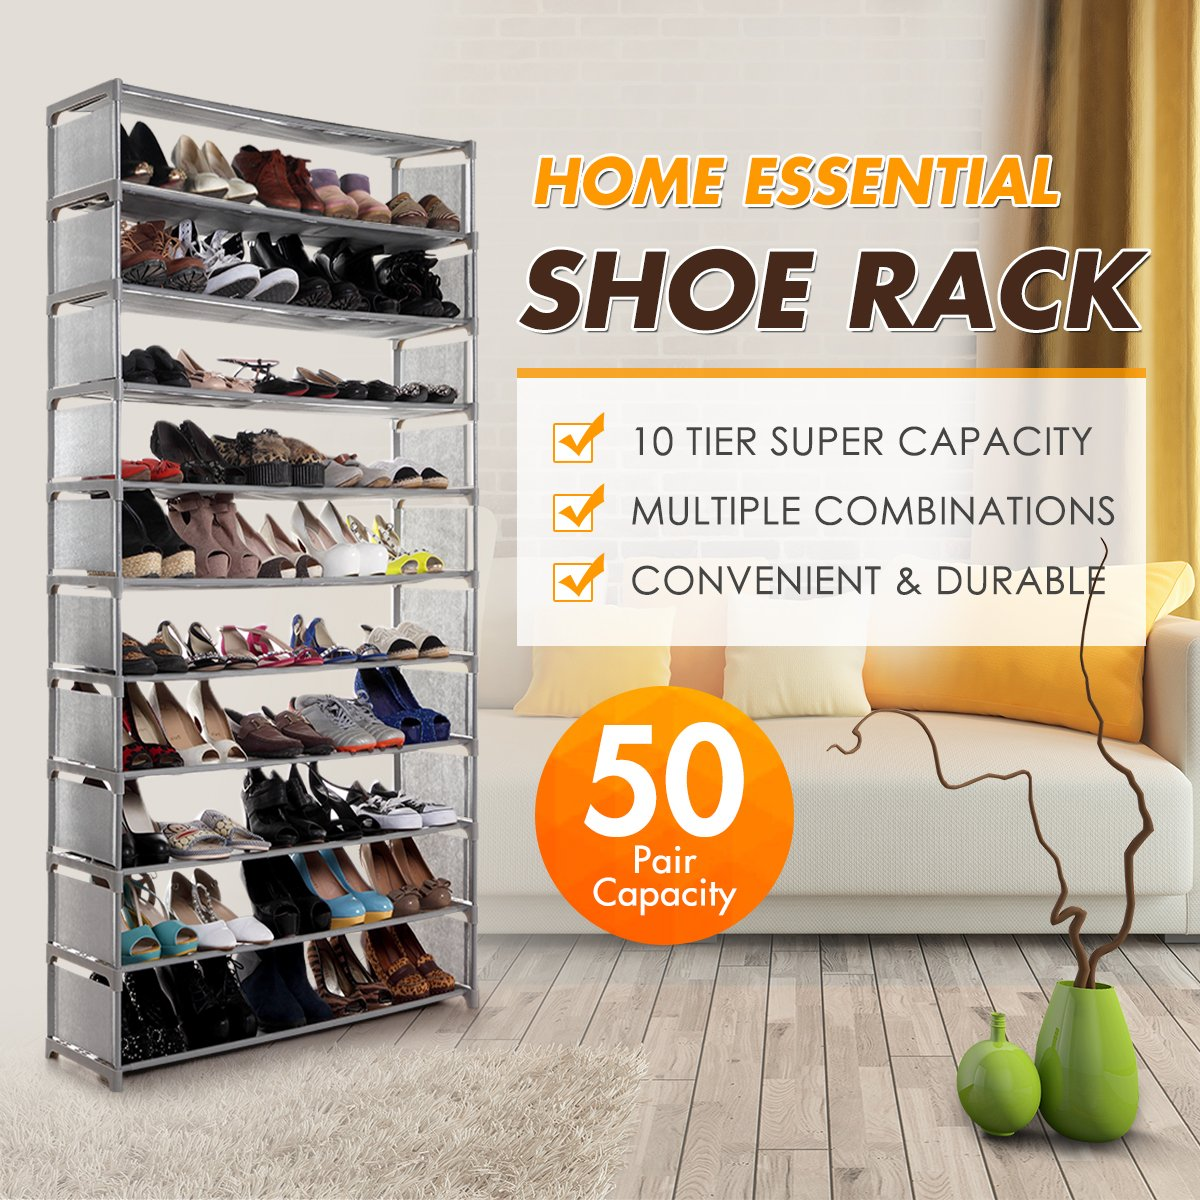 Multiple Combination 50 Pairs 10 Tier Shelf Portable Metal Pipes Organizer Stand With Waterproof Fabric Tiers Luxsuite Shoe Rack Storage Easy Assemble